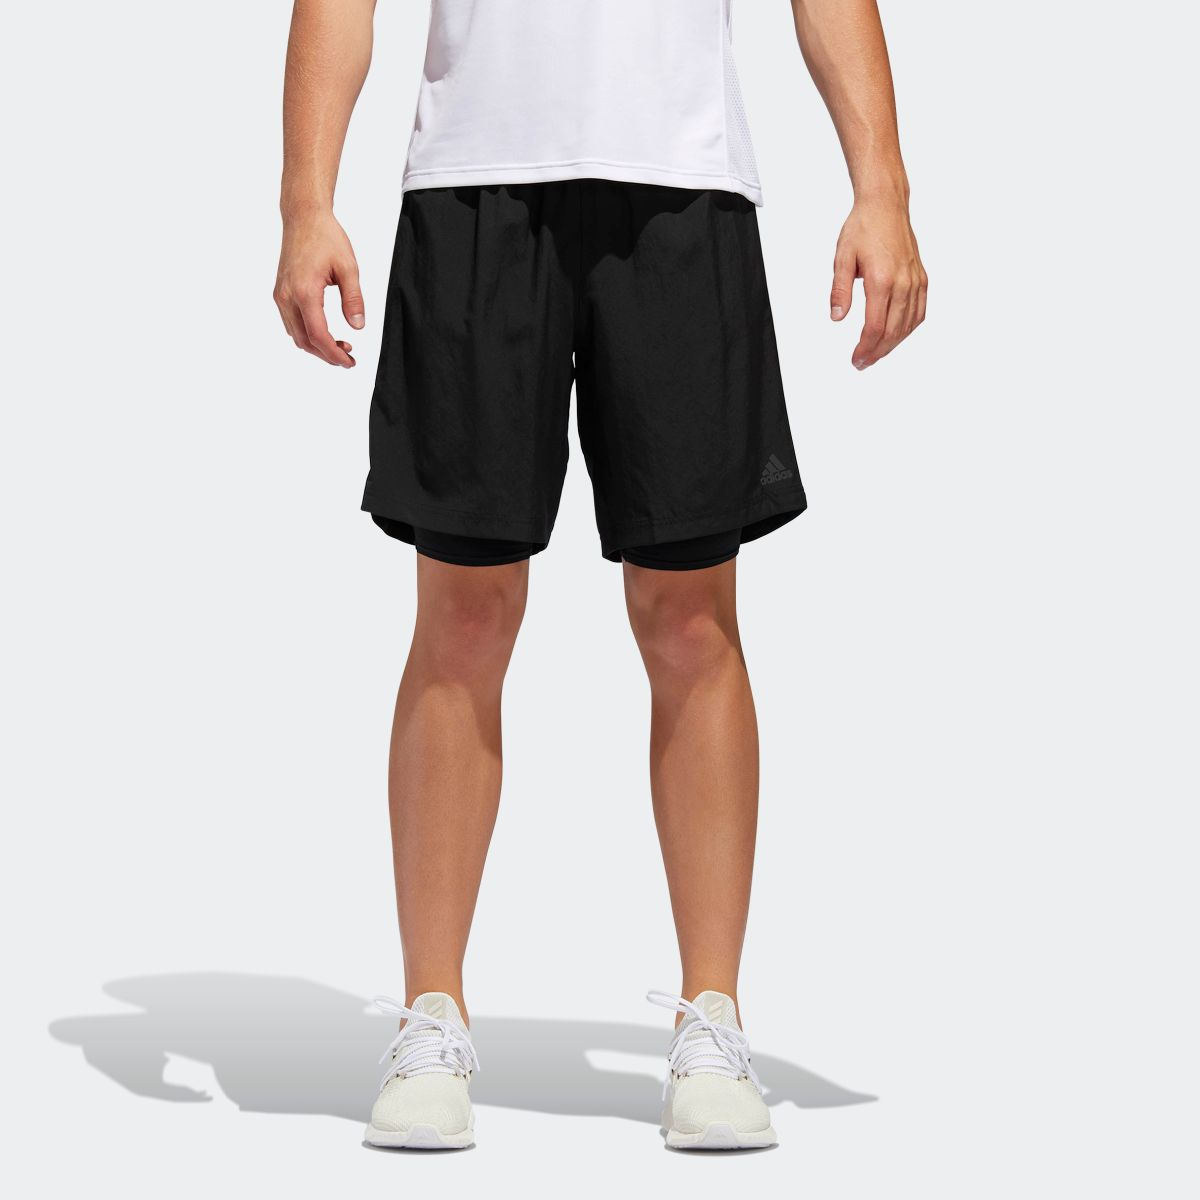 adidas 2in1 shorts